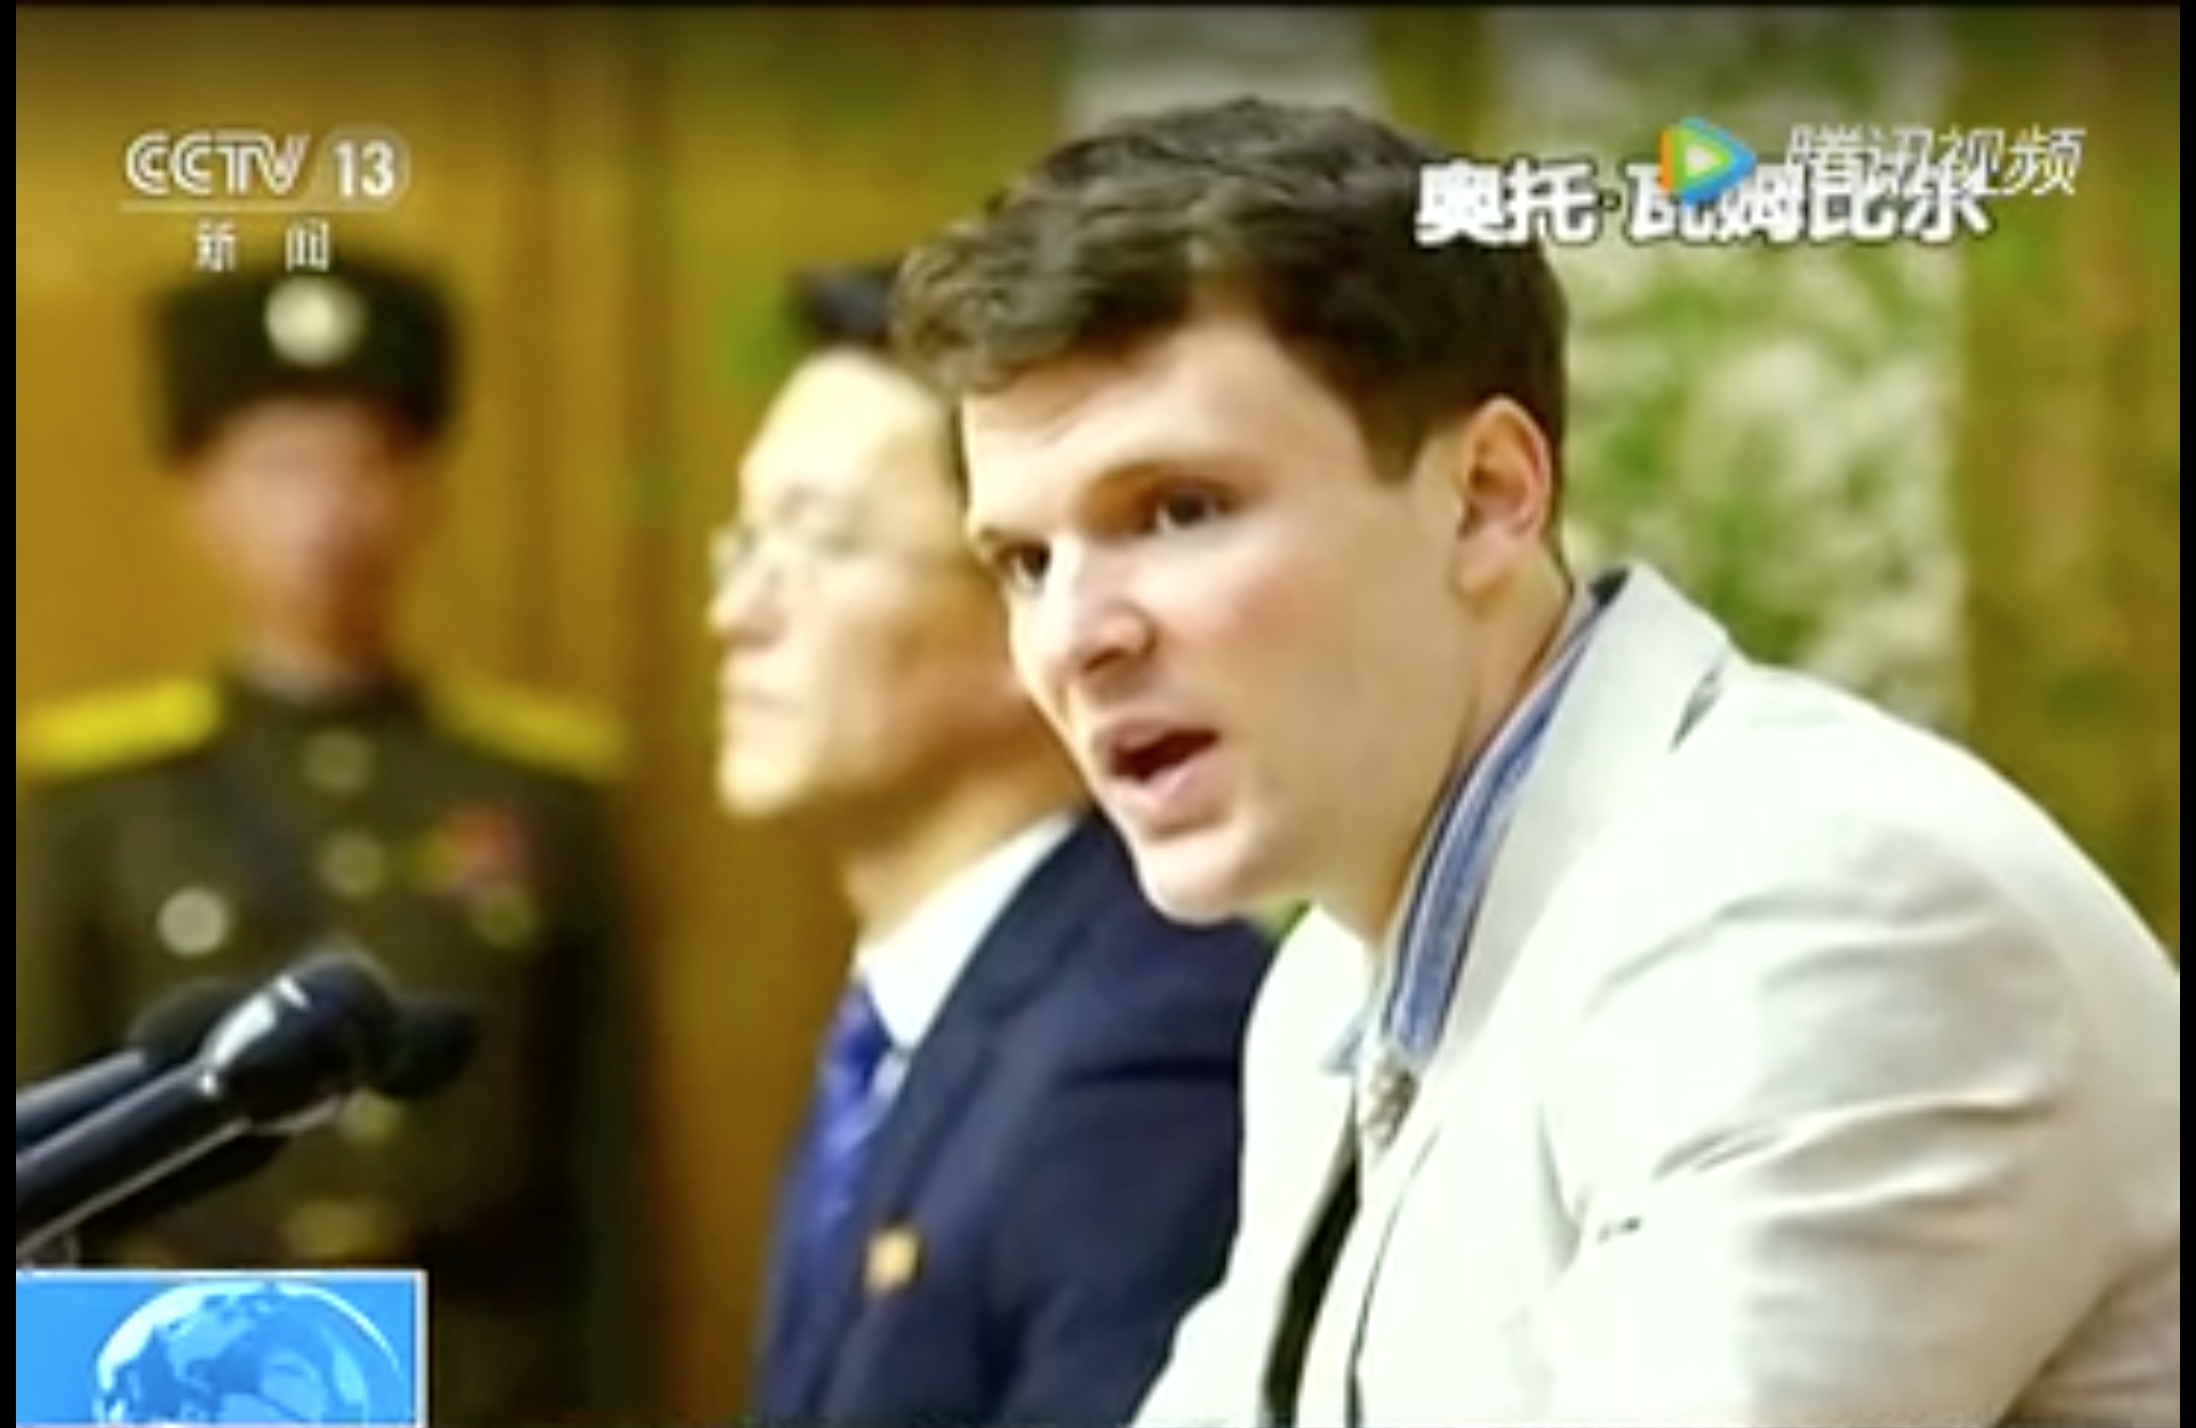 China hopes US, North Korea can properly handle student's death tragedy